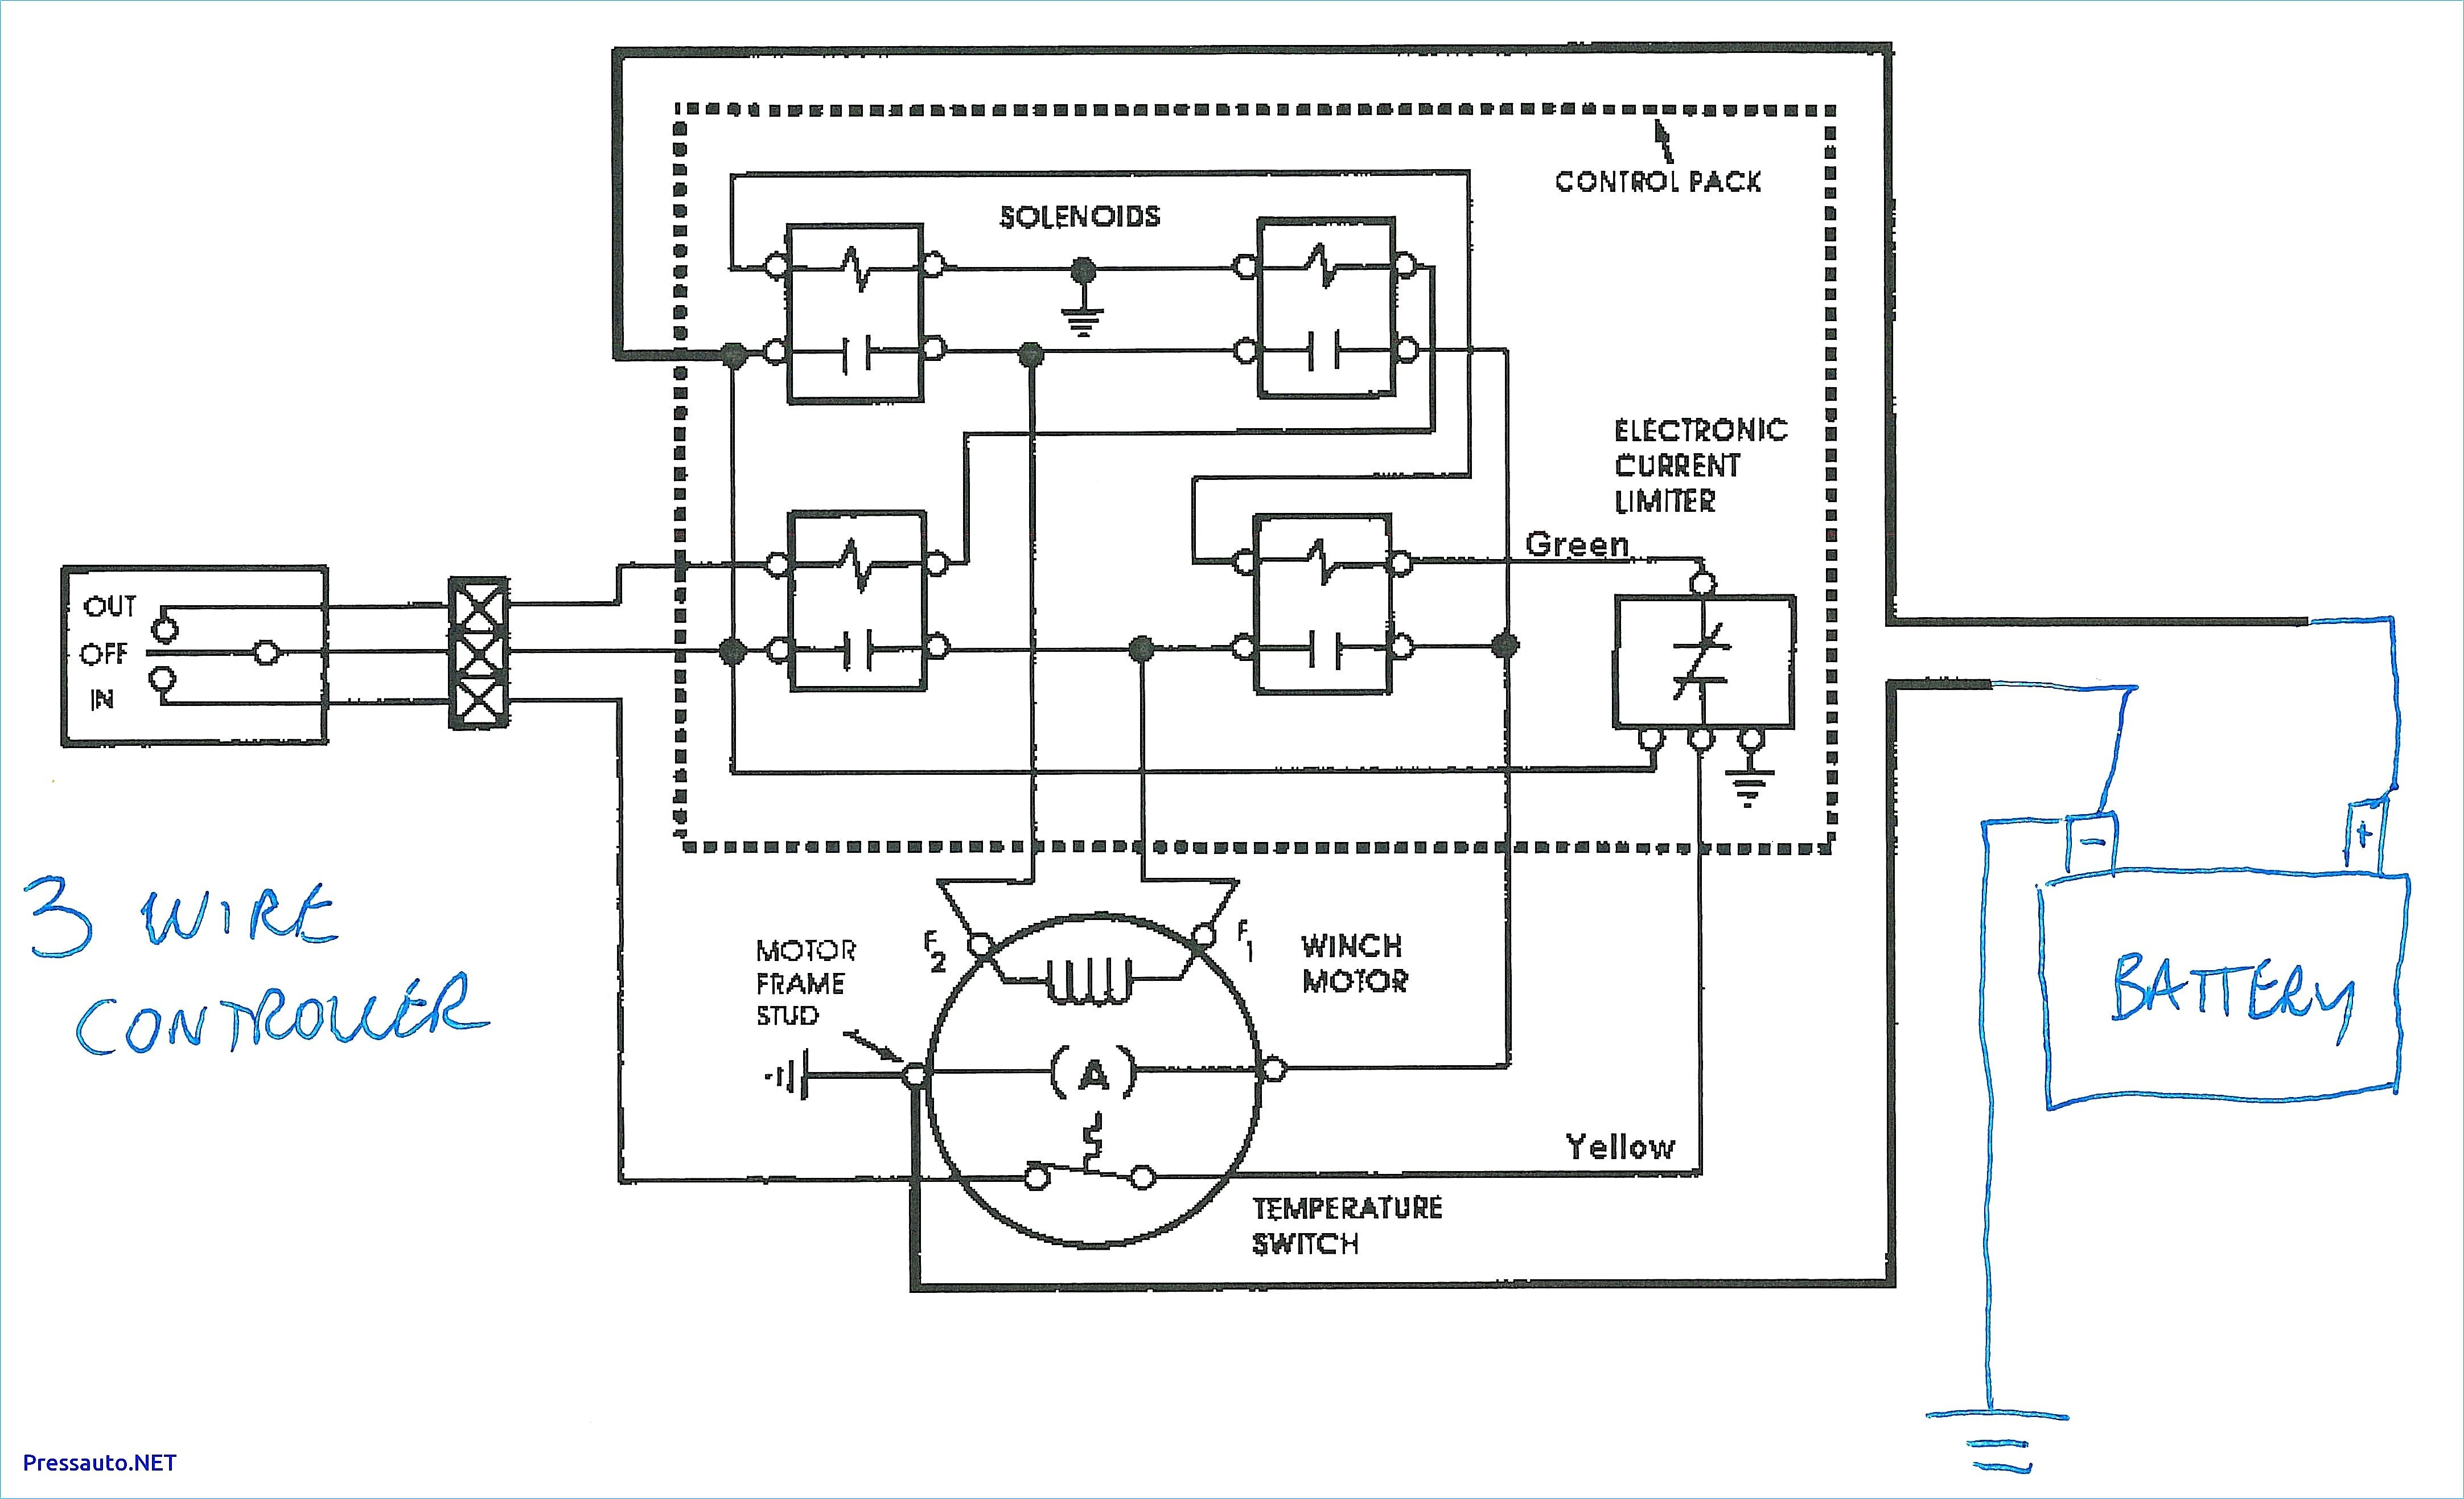 Wiring Diagram for Winch solenoid Inspirationa Wiring Diagram Winch solenoid Refrence Badland Winch Wiring Diagram